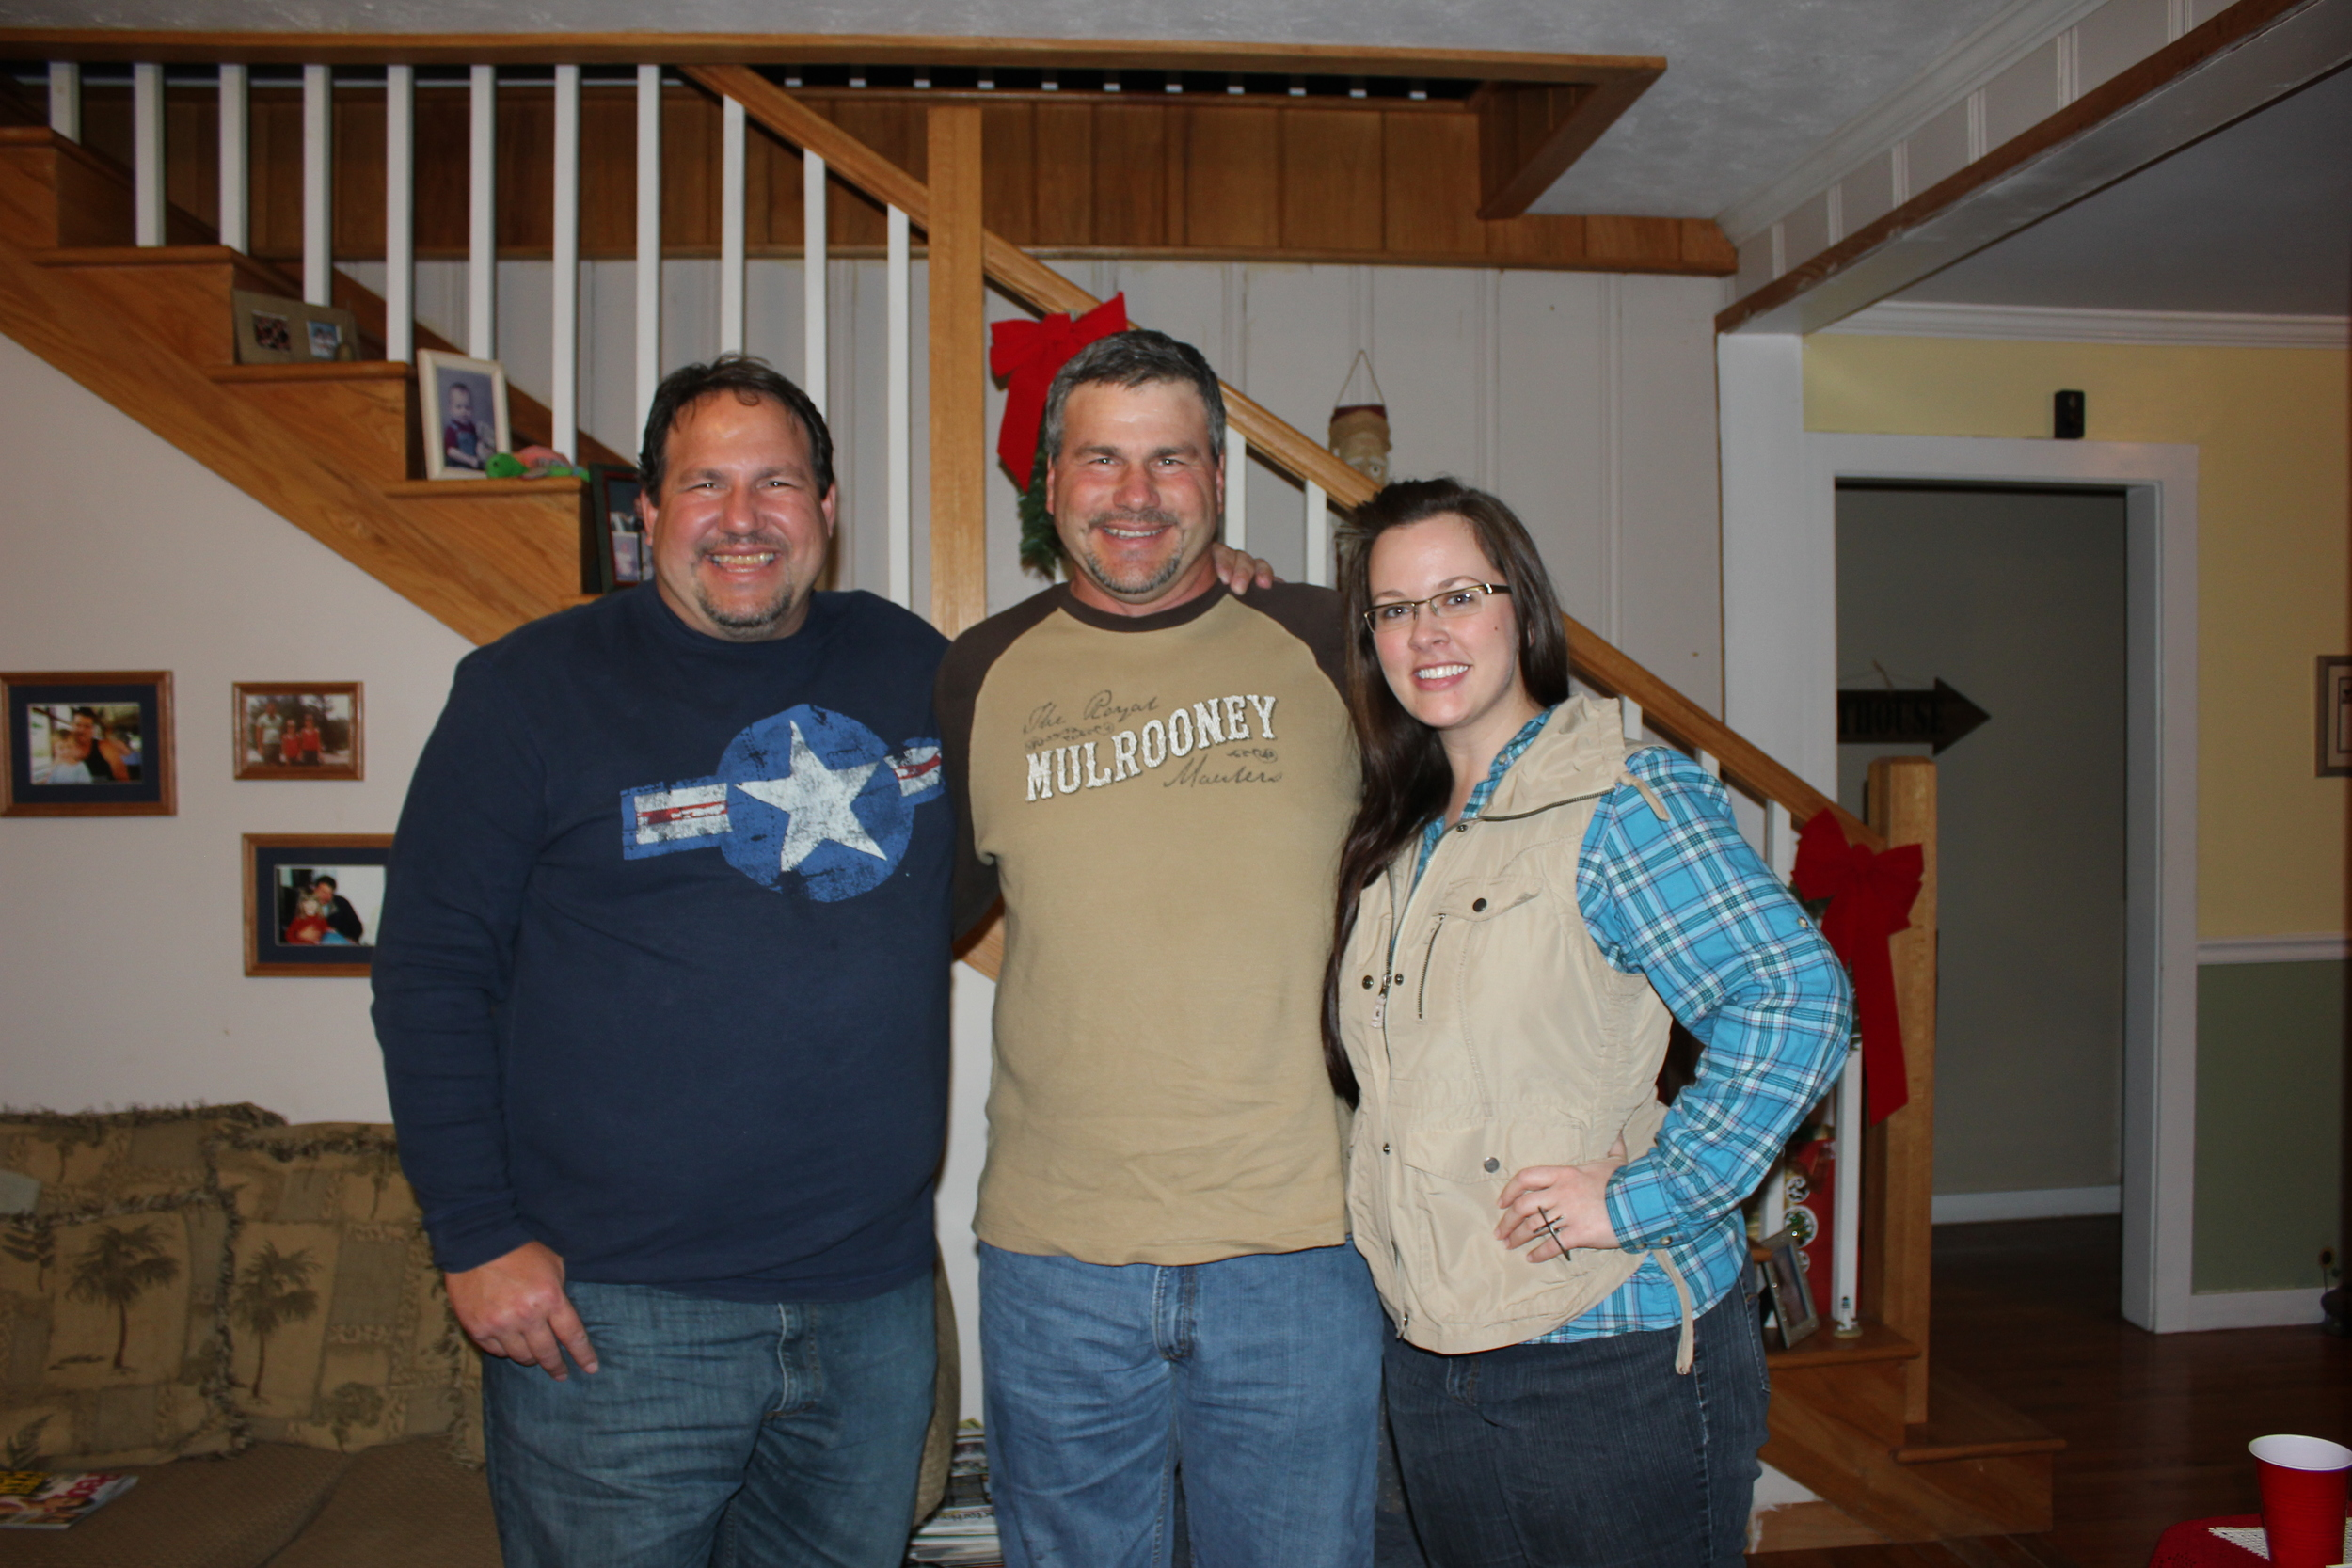 With my cousins, Tim and Ronnie. Good people.